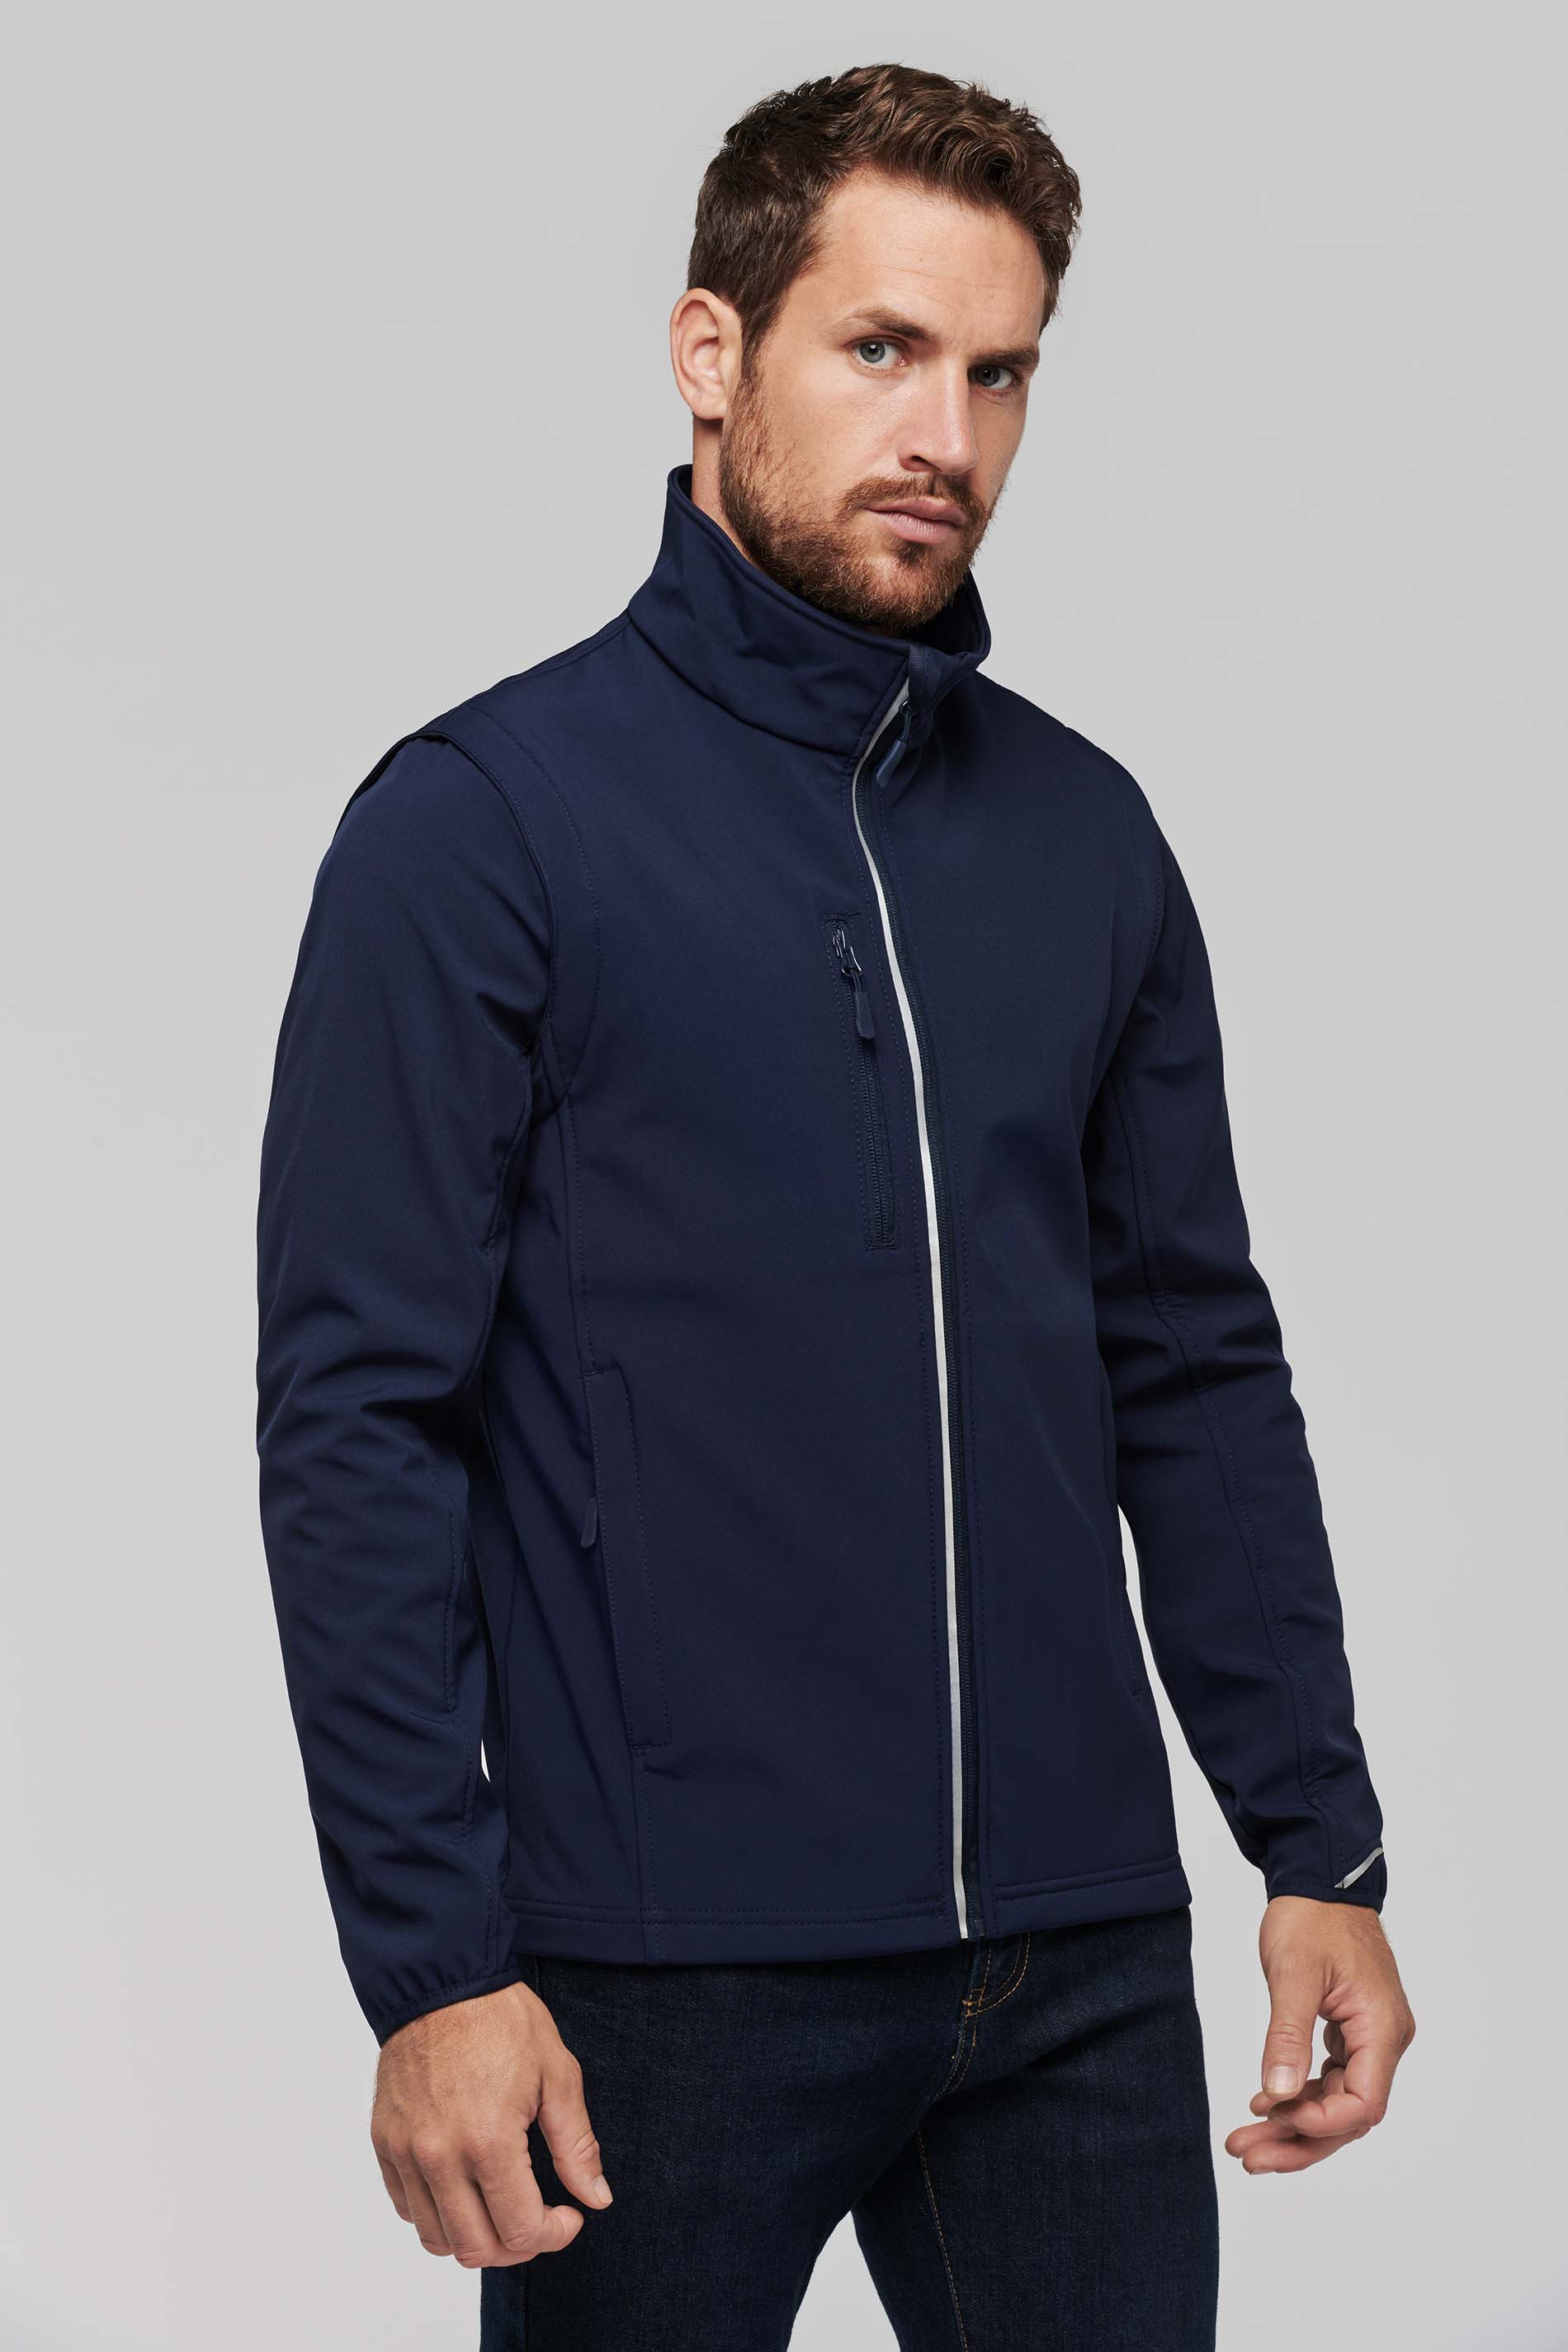 Proact VESTE SOFTSHELL SPORT MANCHES AMOVIBLES UNISEXE